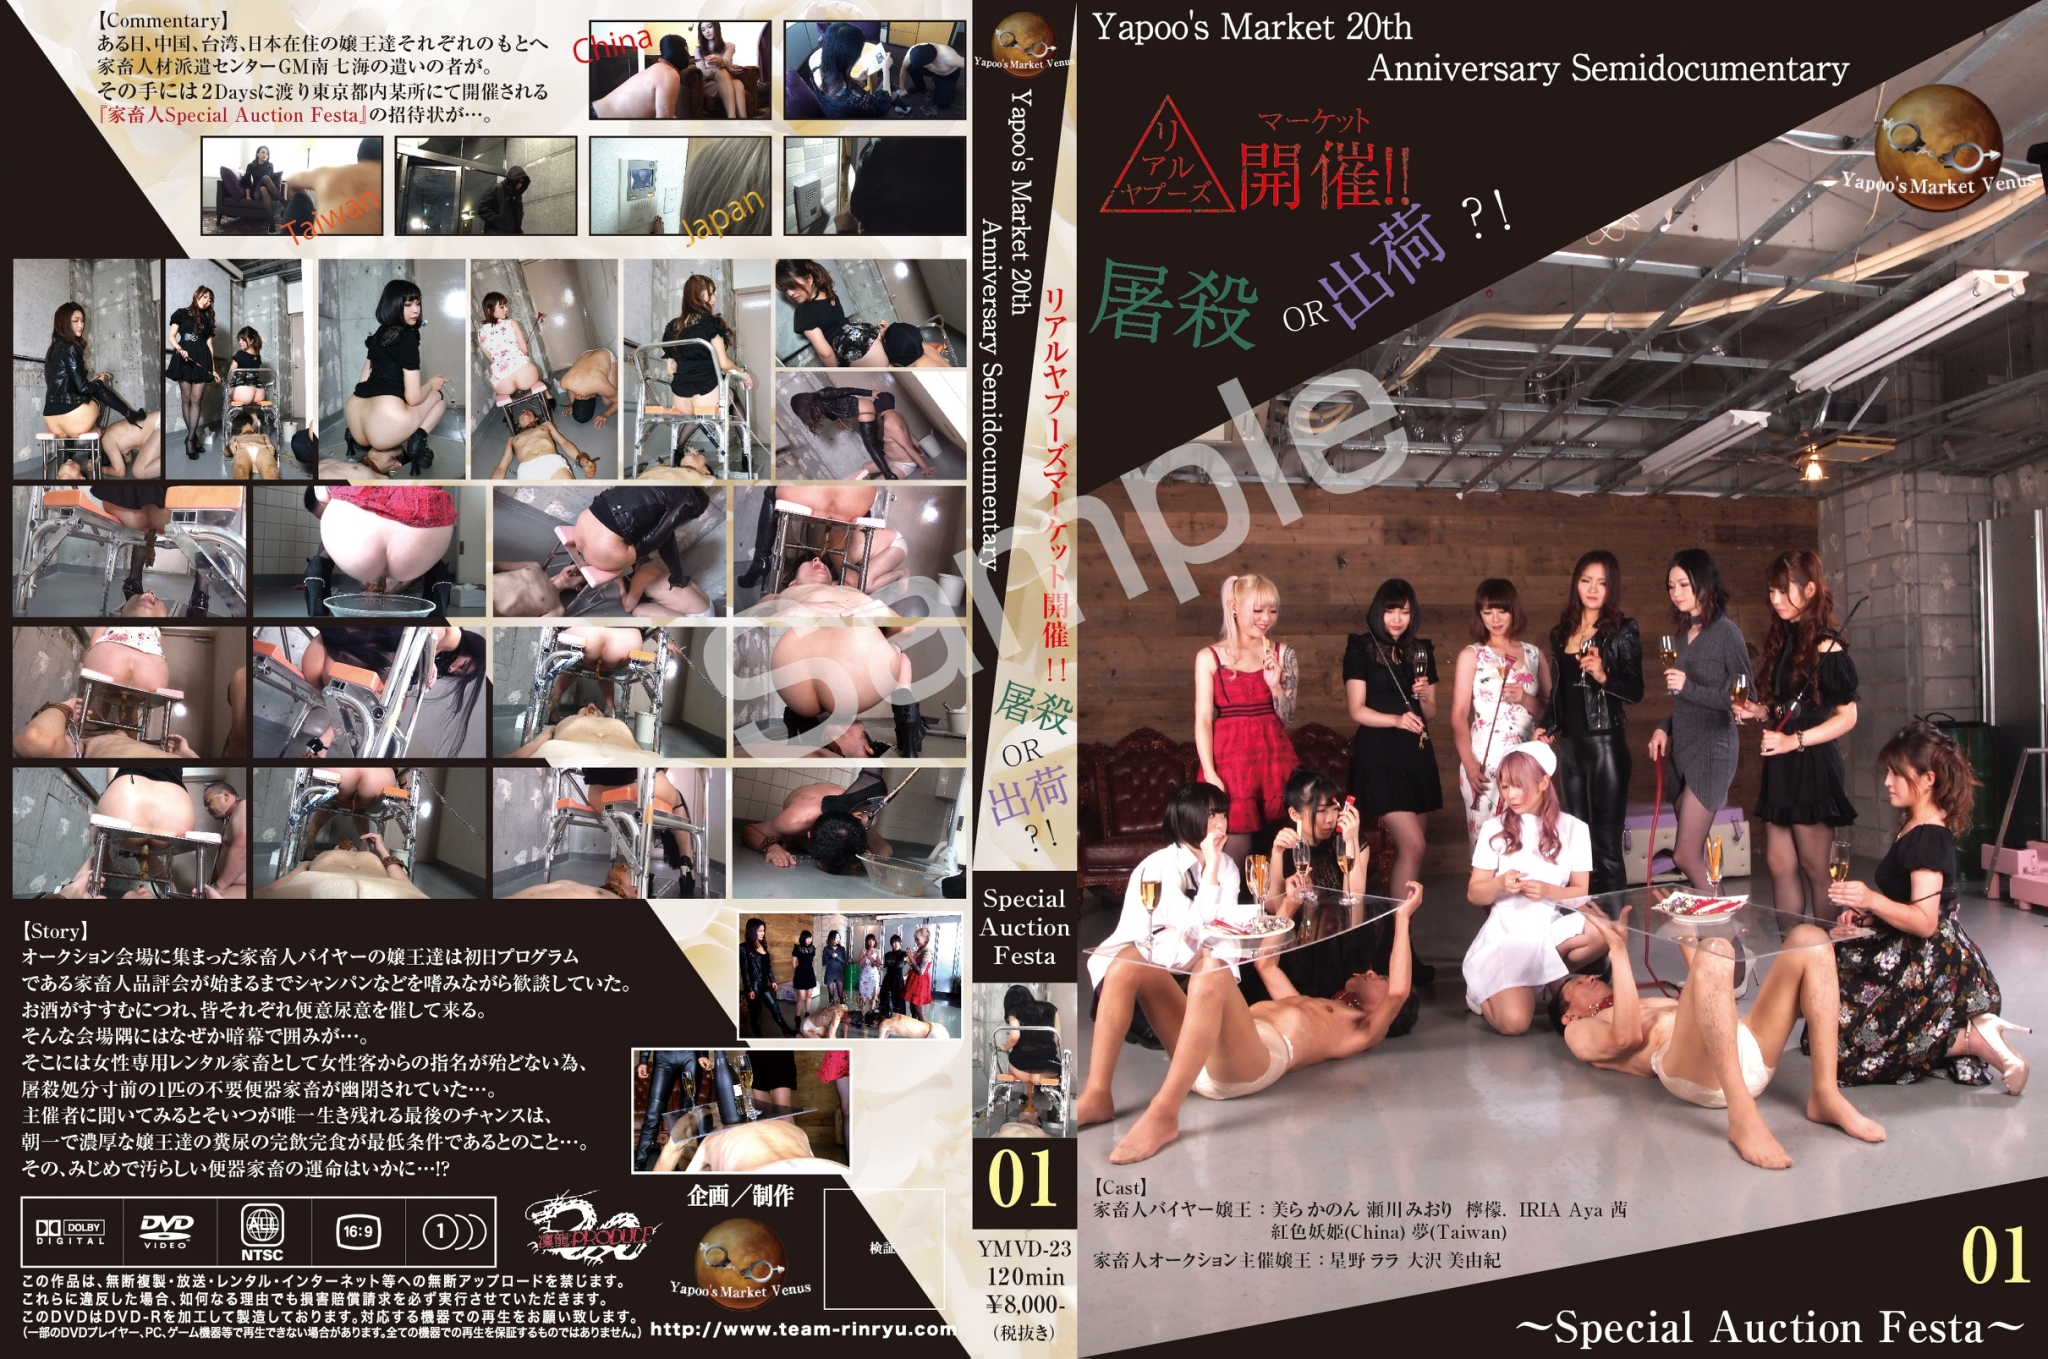 Yapoo's Market - Venus Special Auction Festa - Blu-Ray - 6 Film